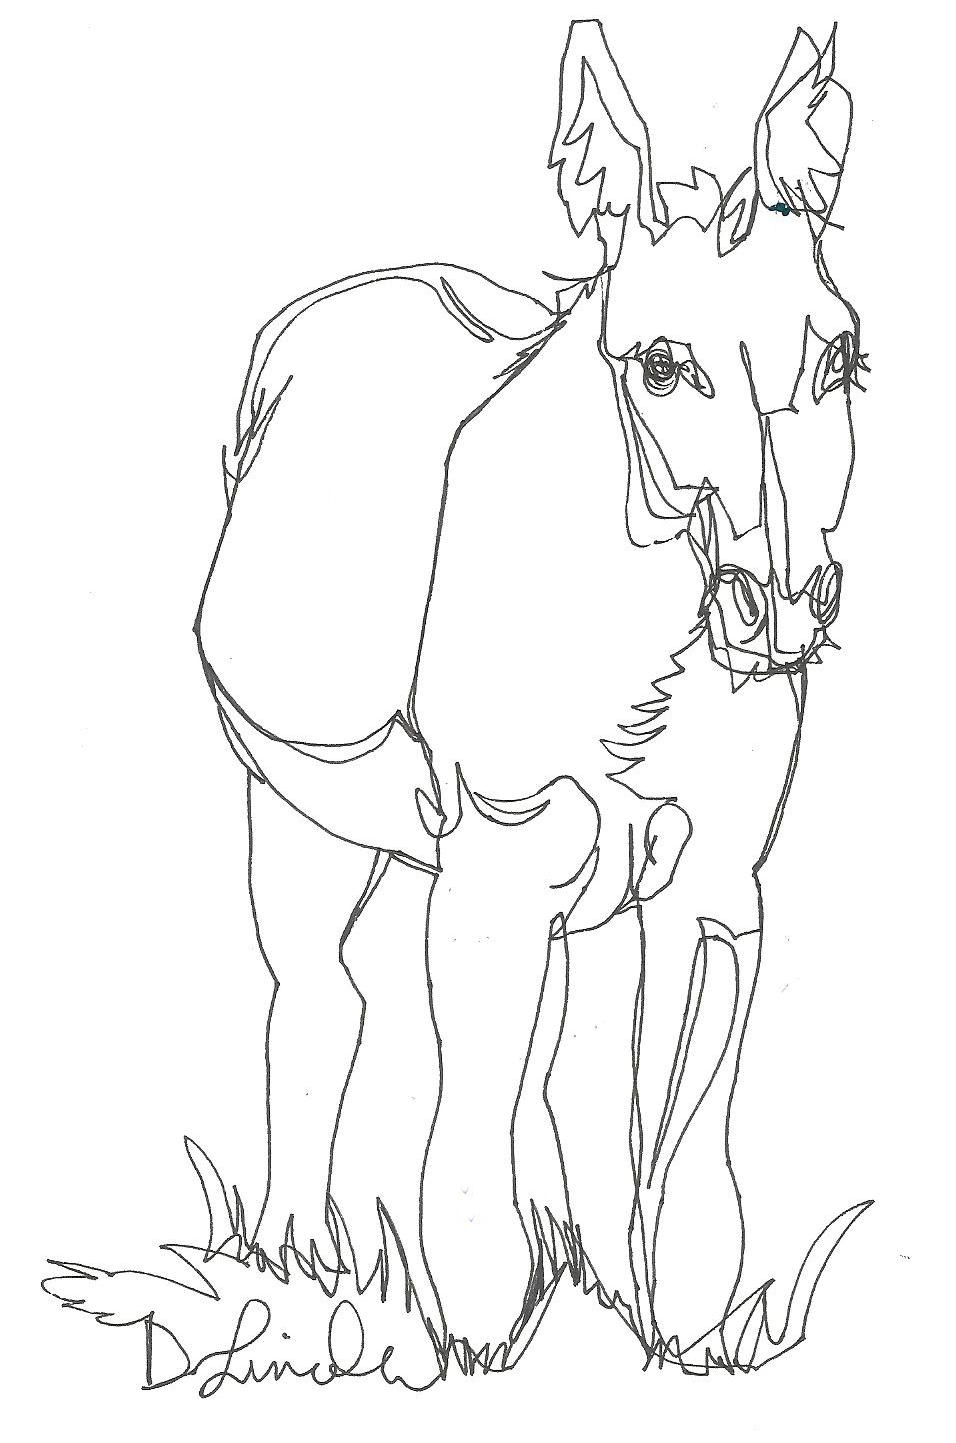 donkey face coloring page - free coloring pages of donkey face mask template